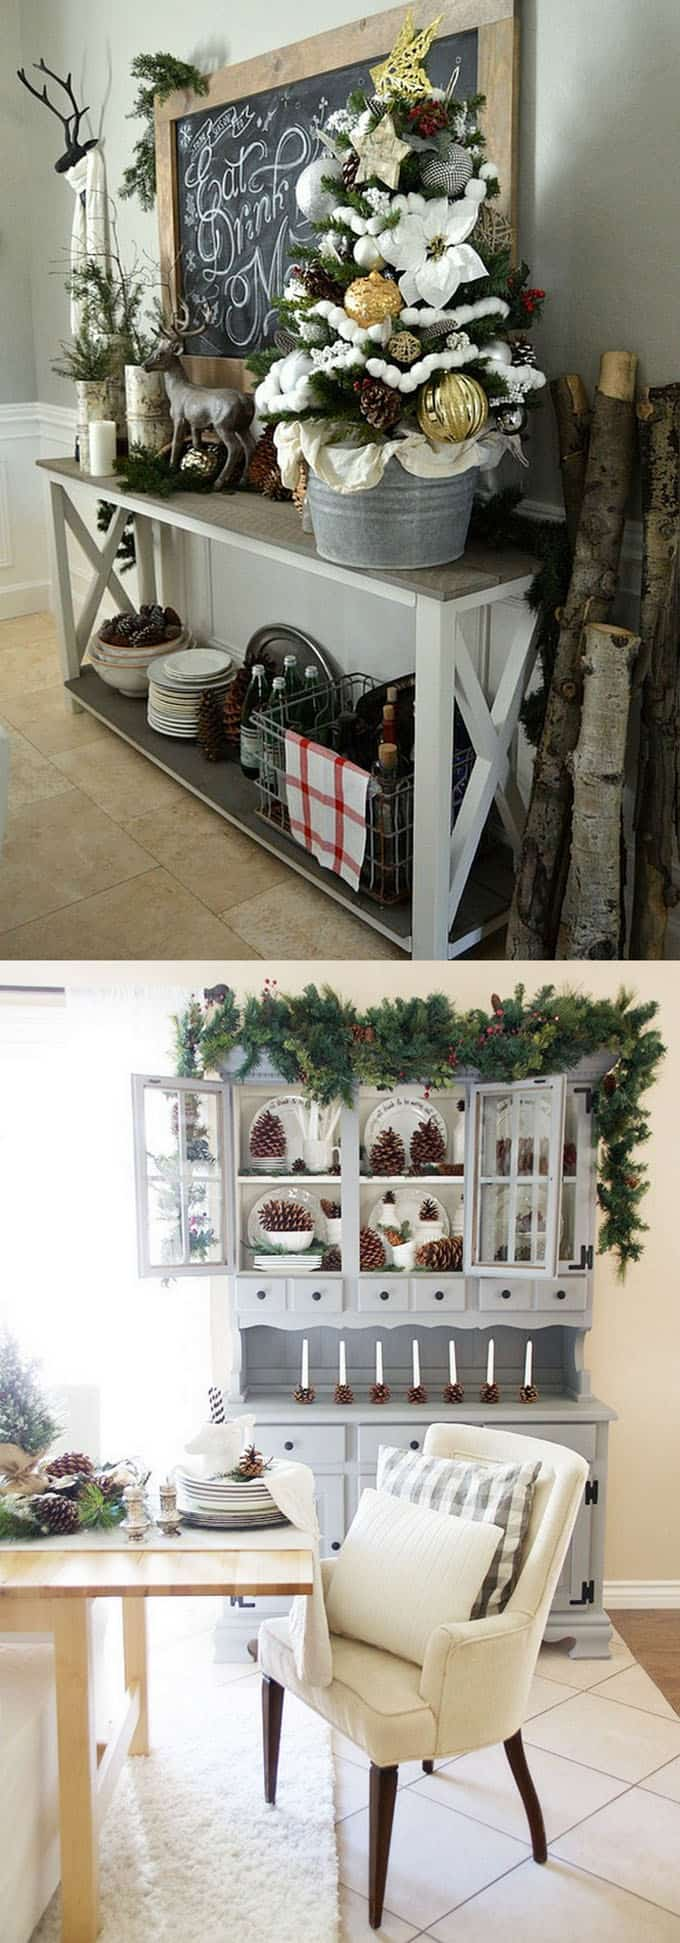 100 favorite christmas decorating ideas every room apieceofrainbow 6 - 100+ Favorite Christmas Decorating Ideas For Every Room in Your Home : Part 2